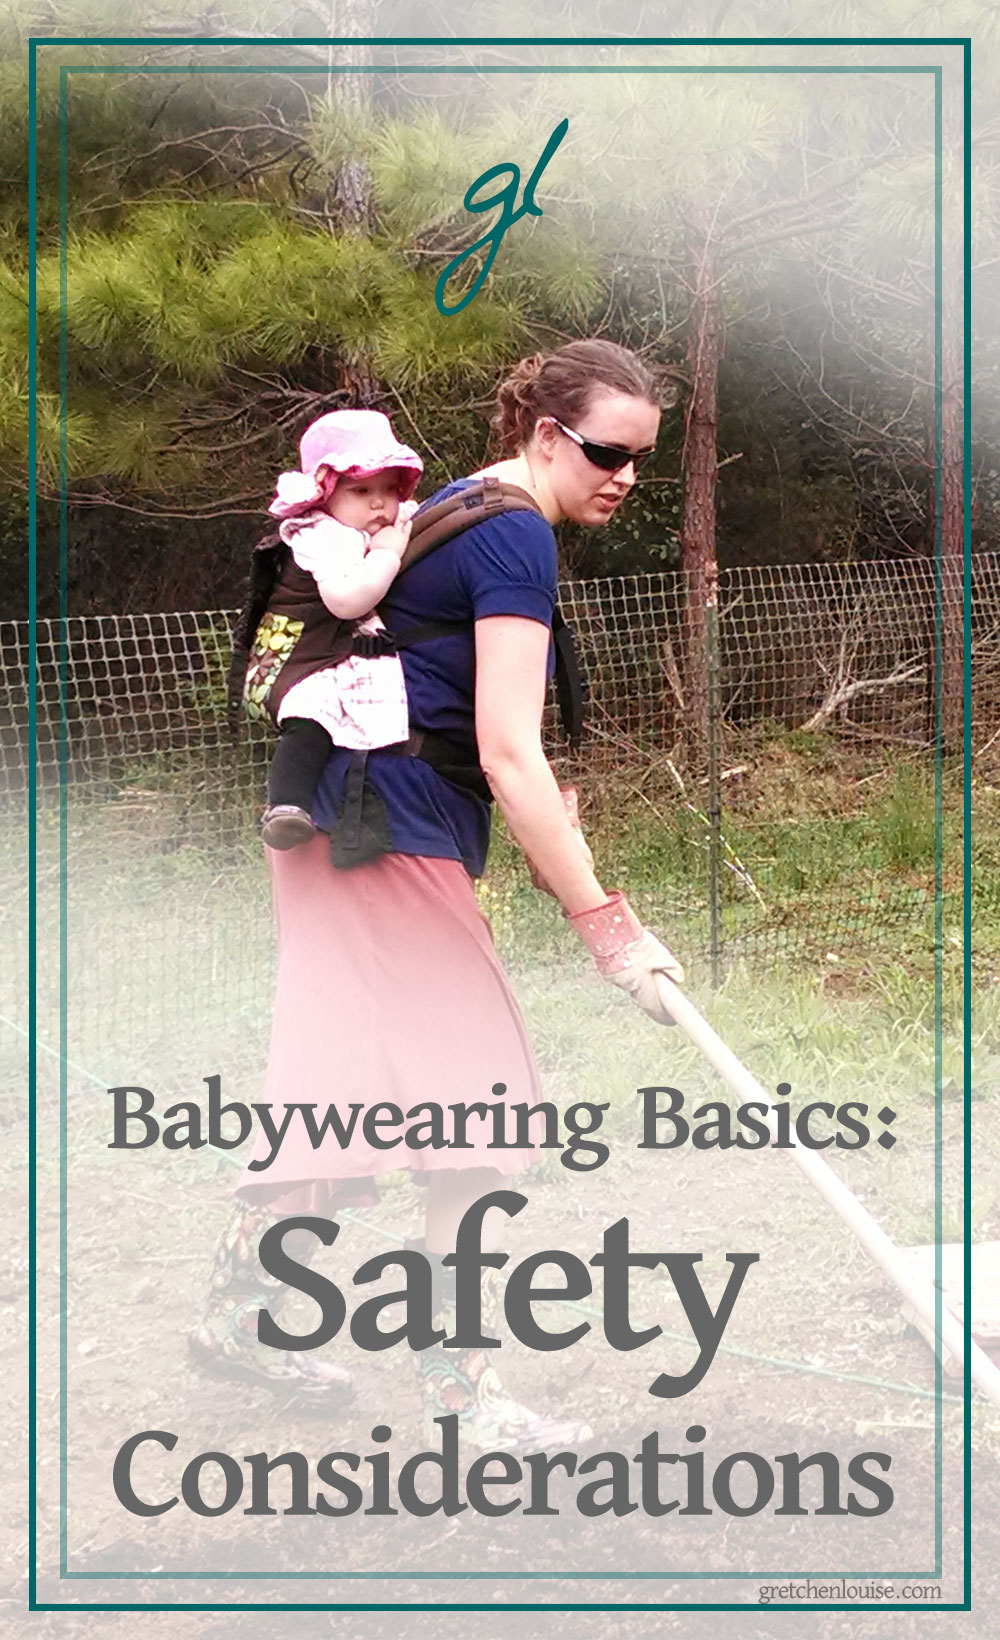 Babywearing has been around for hundreds of years and it usually exists in some form in most cultures. However, just because something has been around for a long time doesn't mean that it has always been done safely. via @GretLouise